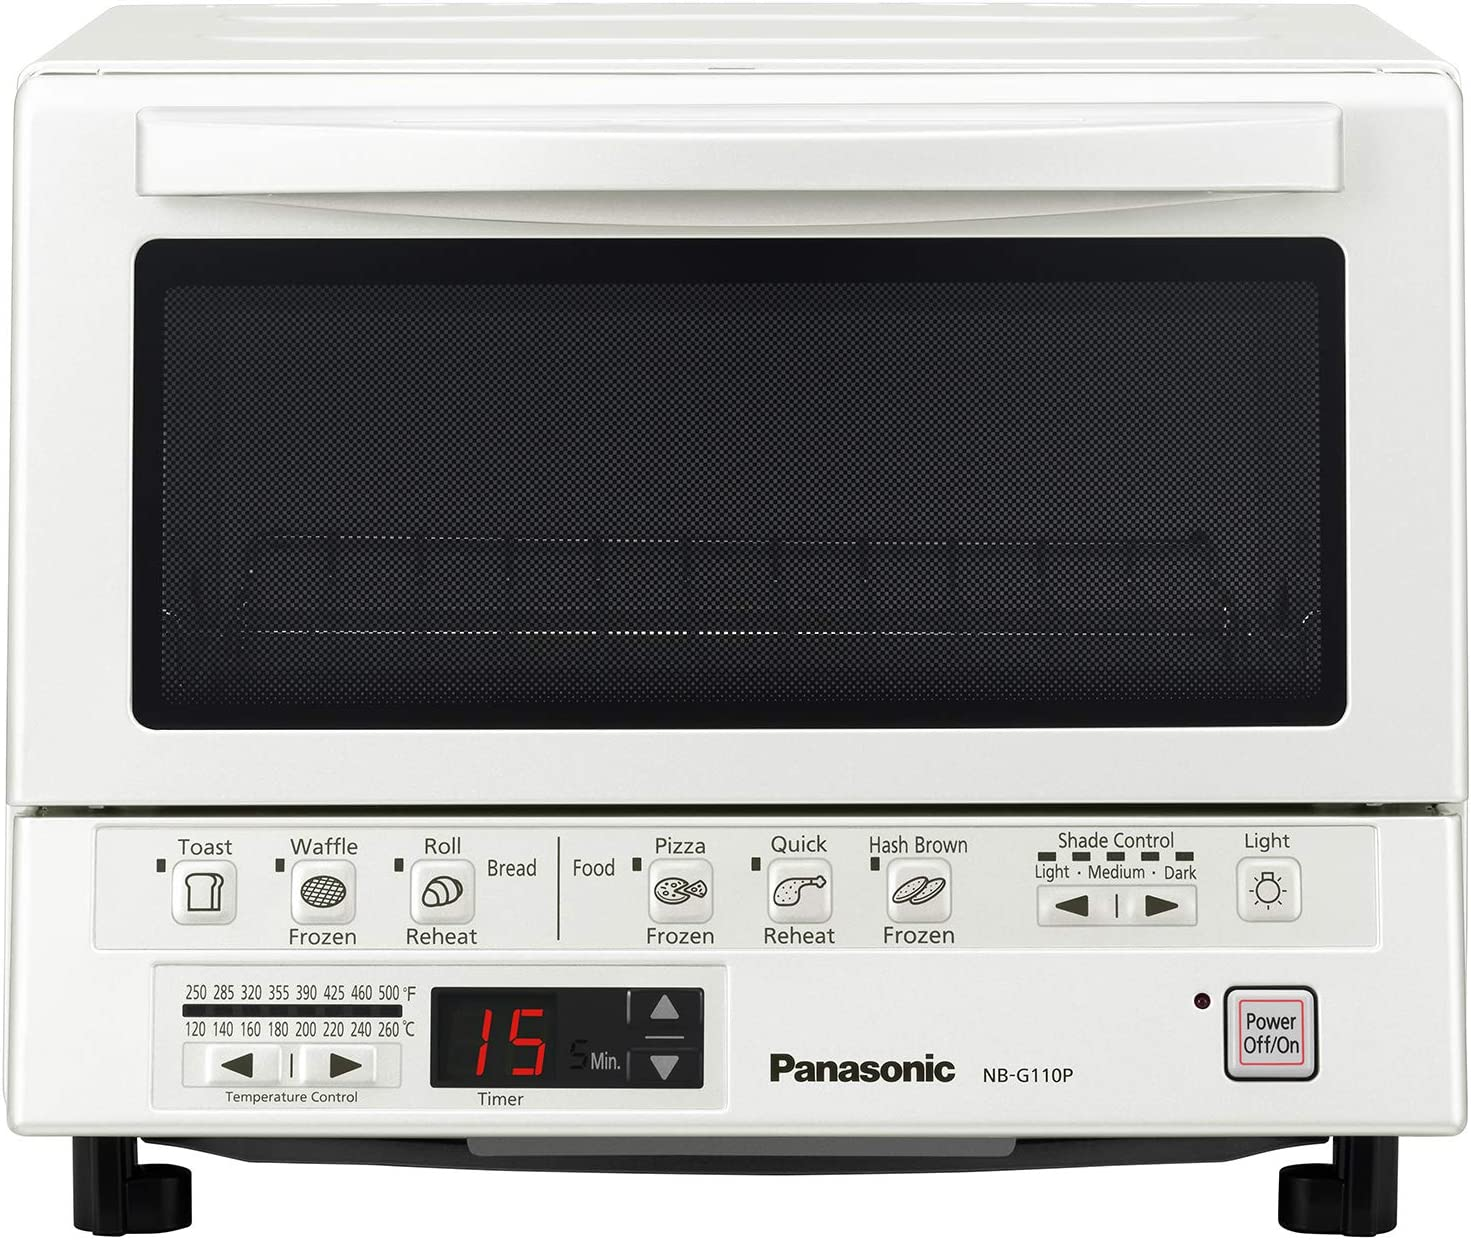 Top 9 Best Toaster Ovens (2020 Reviews & Buying Guide) 2